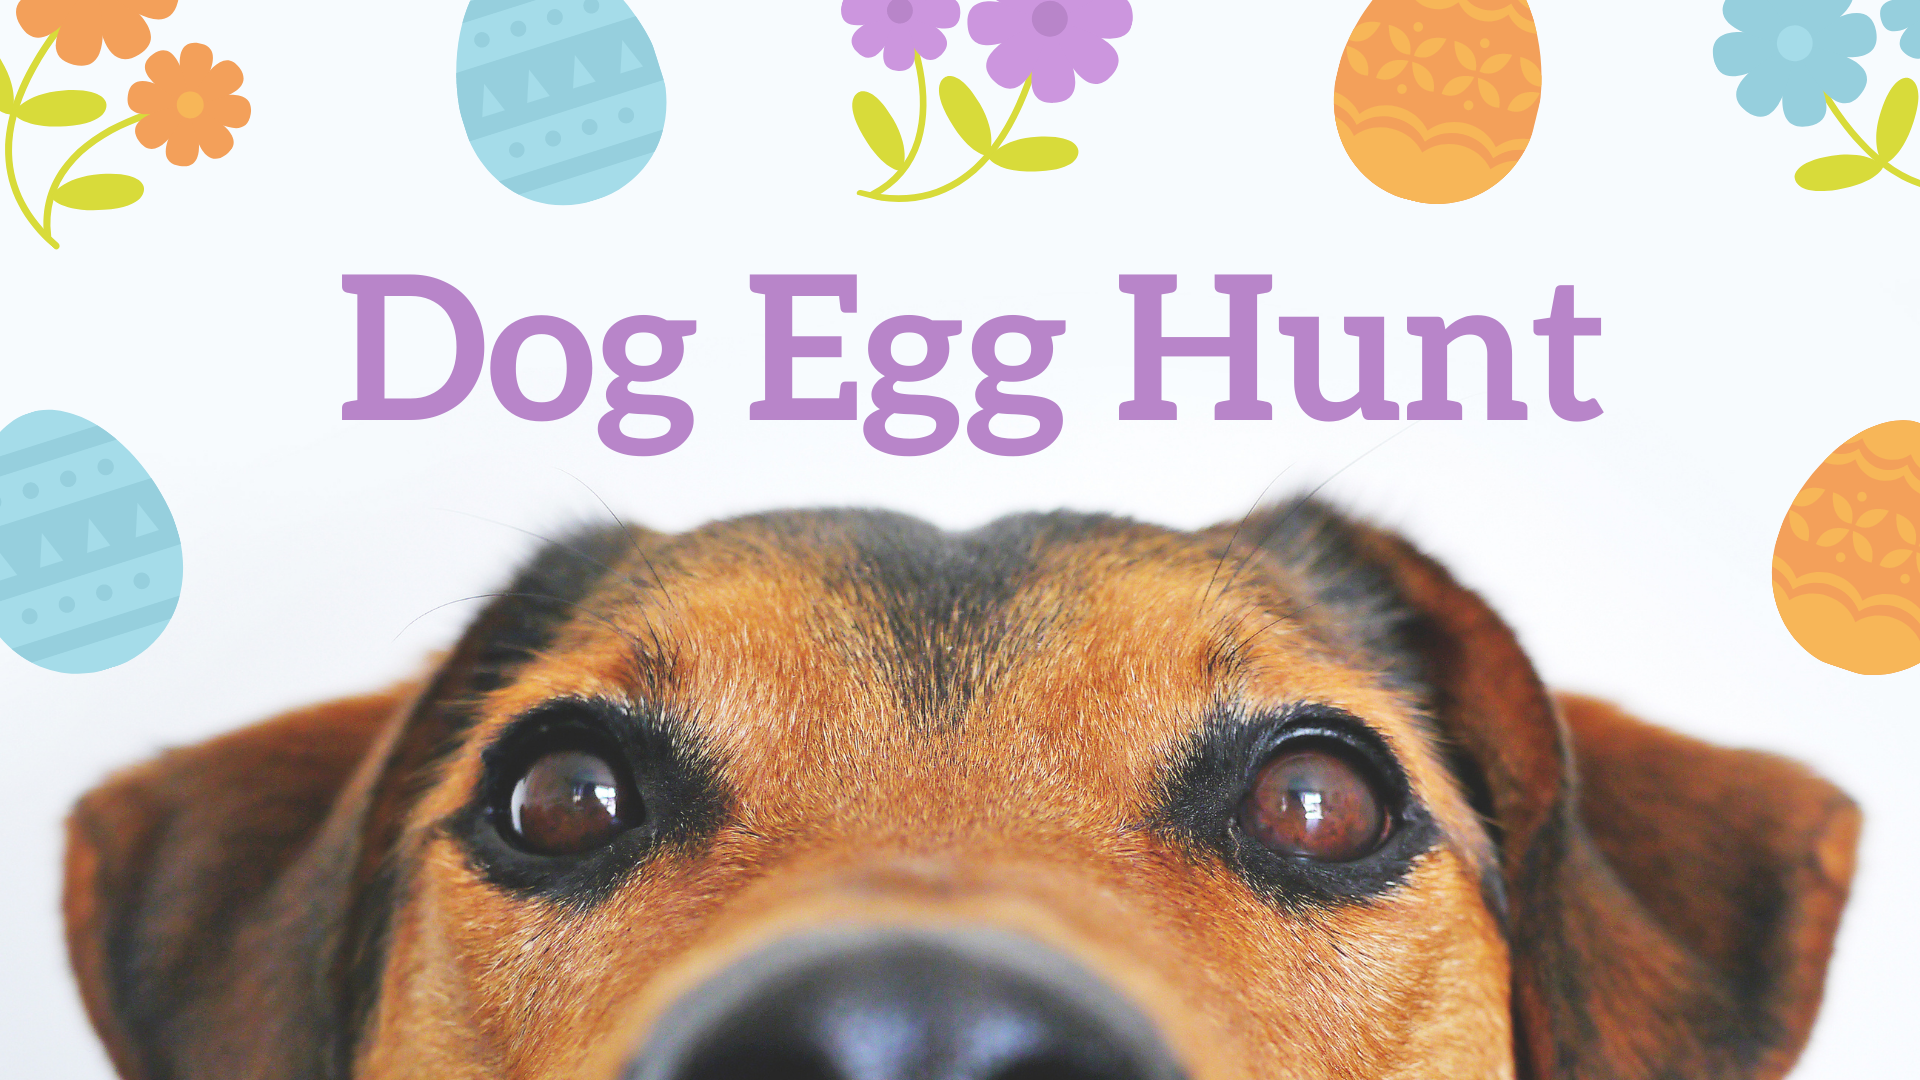 Dog Egg Hunt